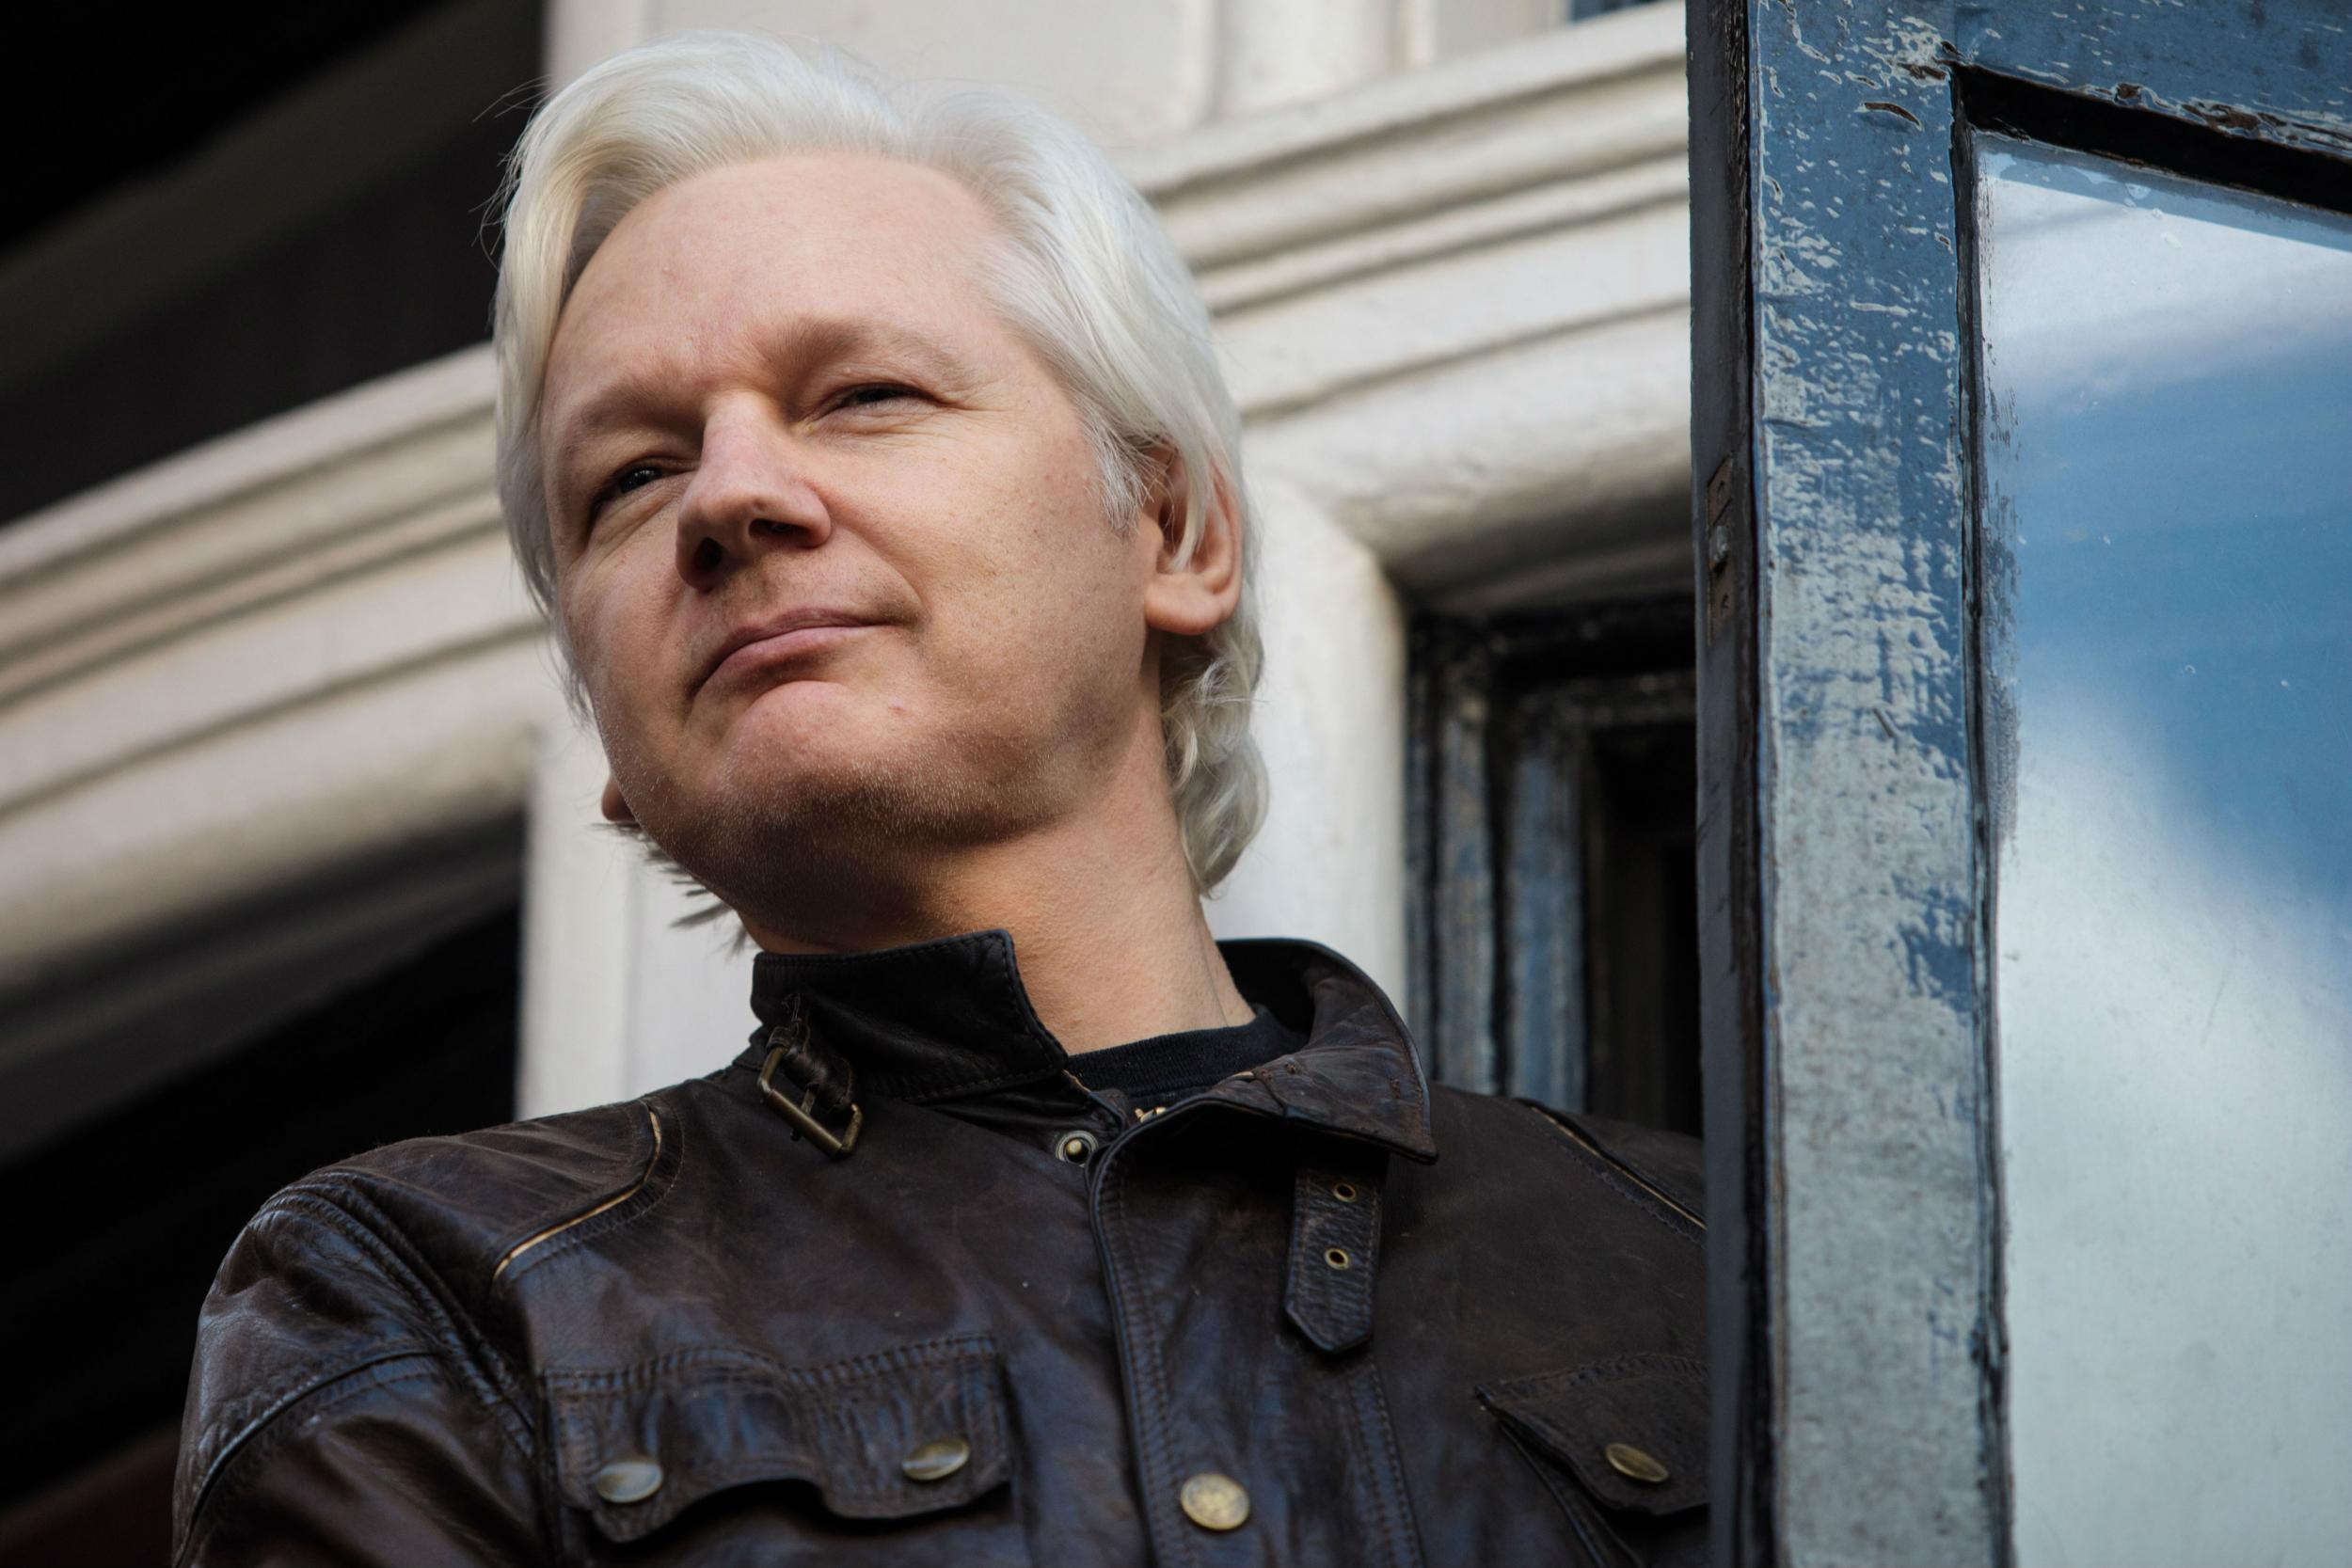 Julian Assange has responded to Trump Jr releasing their private Twitter messagesAustralia - Central Intelligence Agency - CIA - Julian Assange - NSA - Pennsylvania - Russia - Twitter - United States Presidential Election2016 - Wiki Leaks